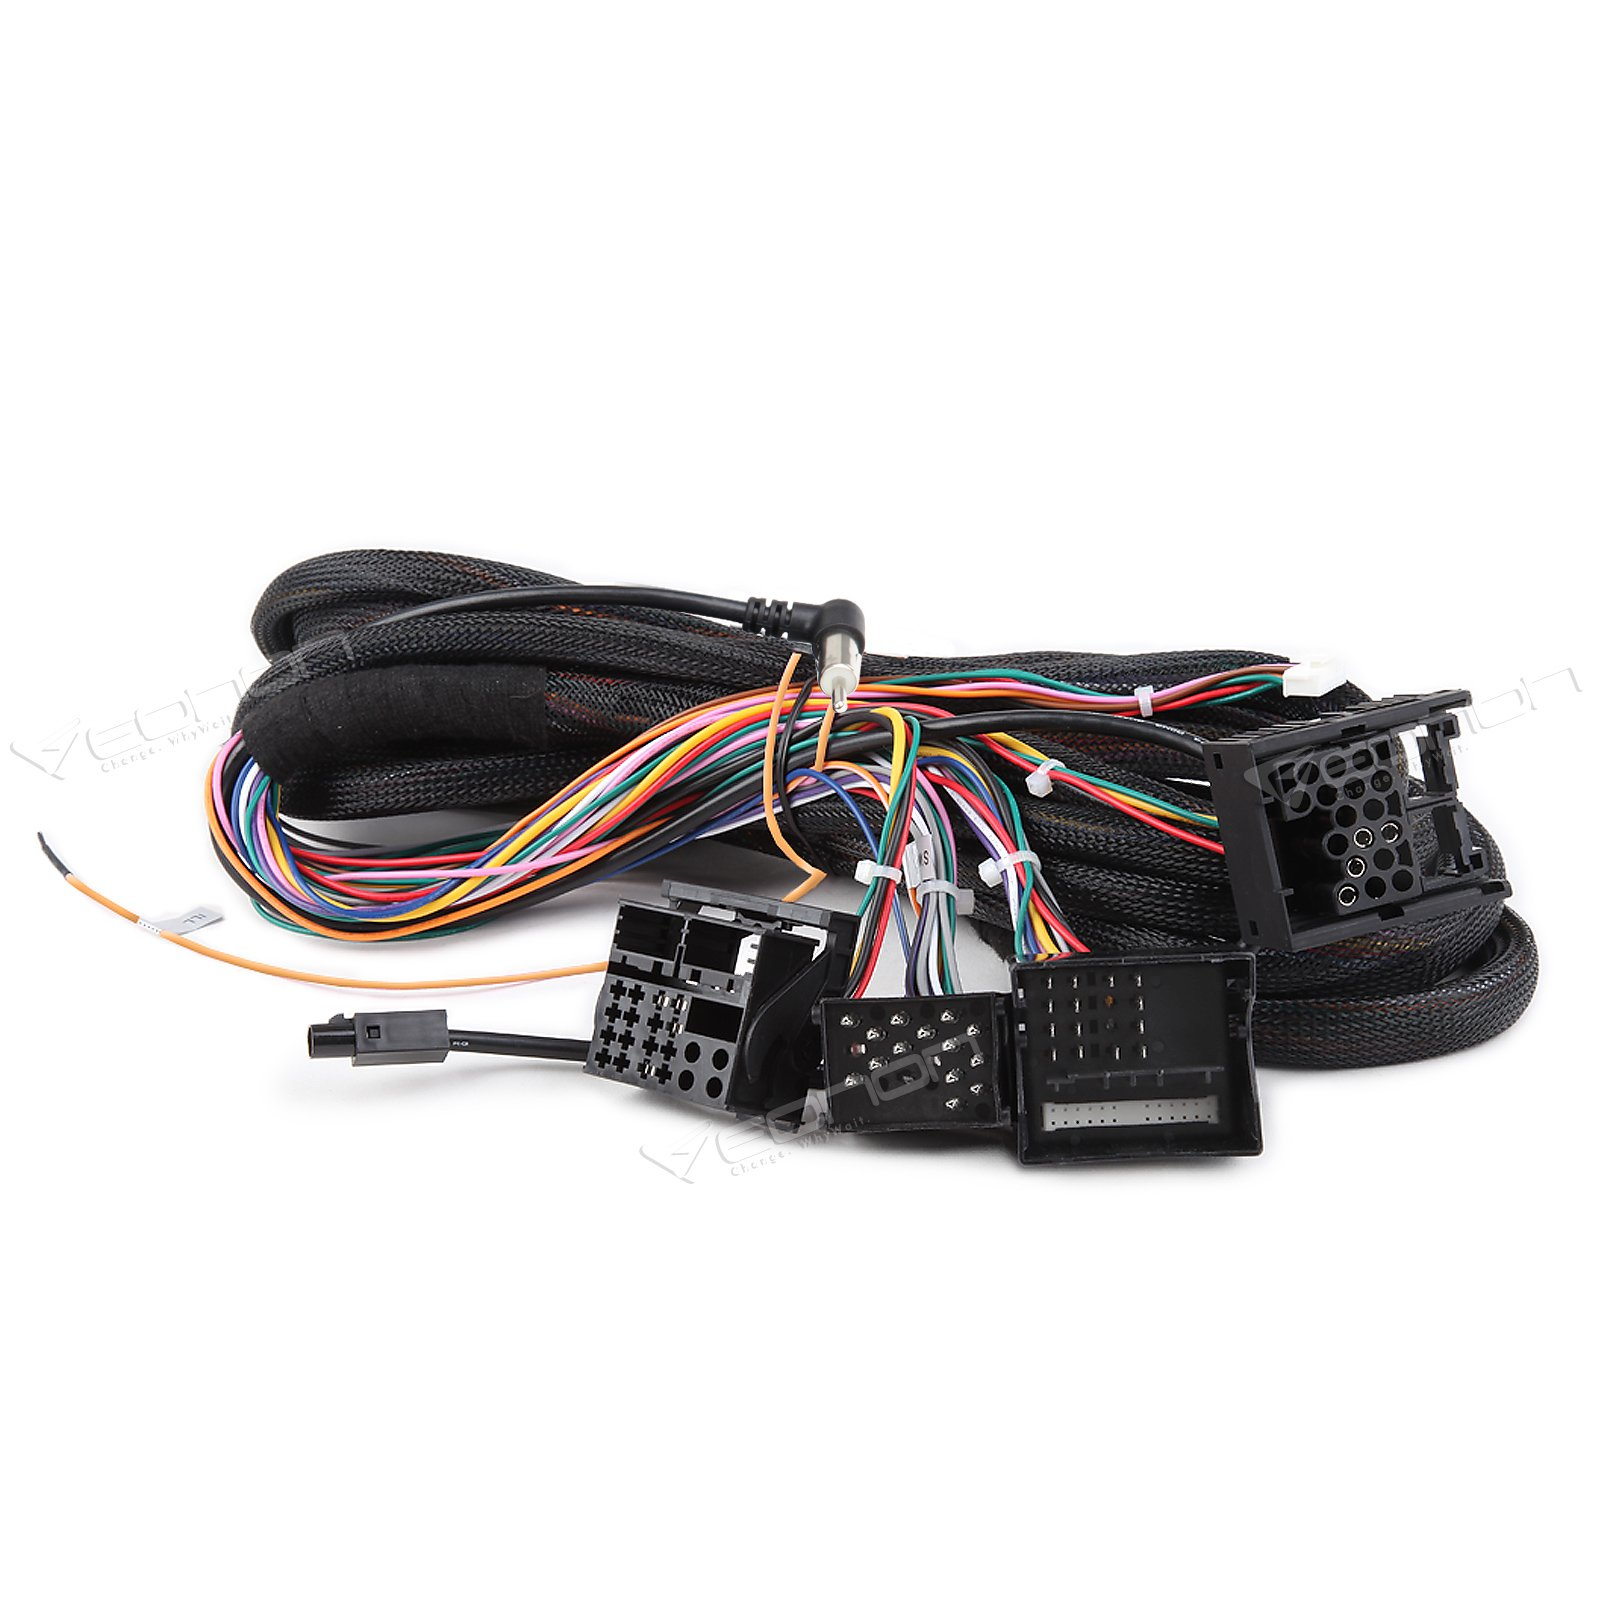 Bmw Wiring Harness Connector Buy Eonon A0577 Extended Installation For Product E46 E39 E53